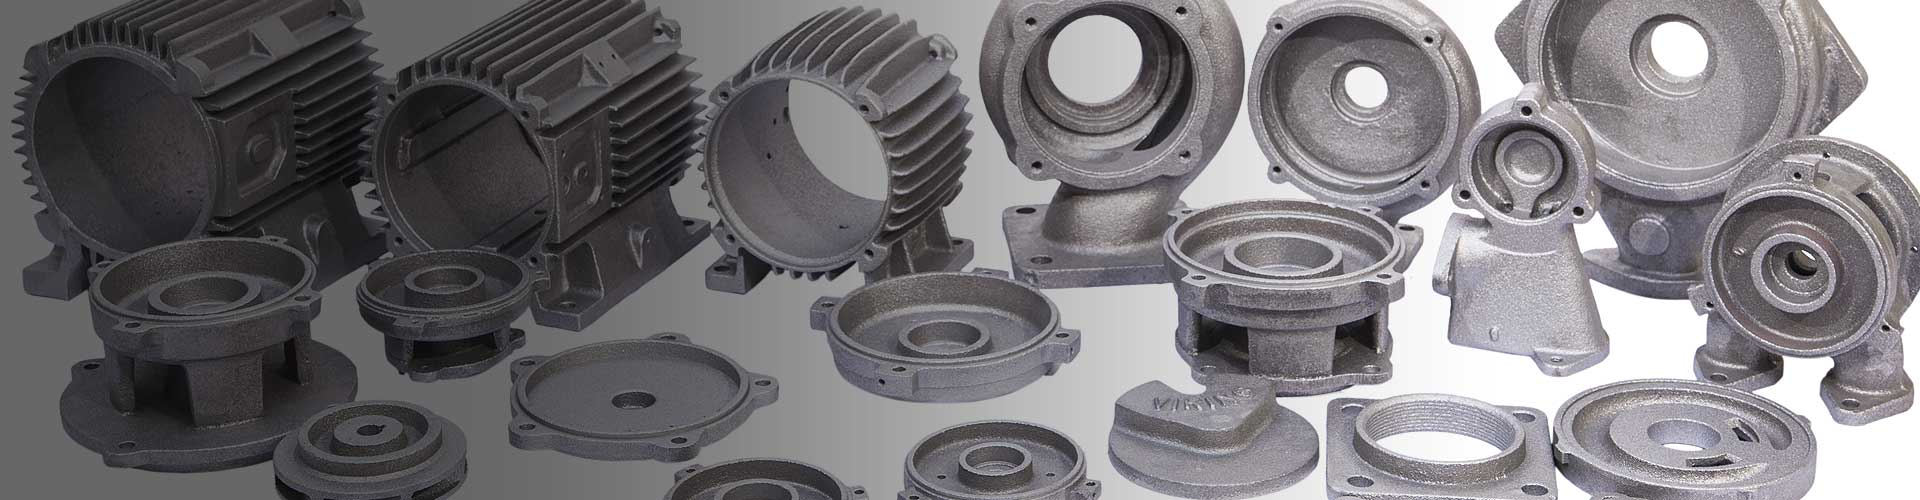 General Engineering Casting, Shell Molding Casting and Sand Casting Supplier in Rajkot, Gujarat, India, We are one of the flexible foundries in this region.